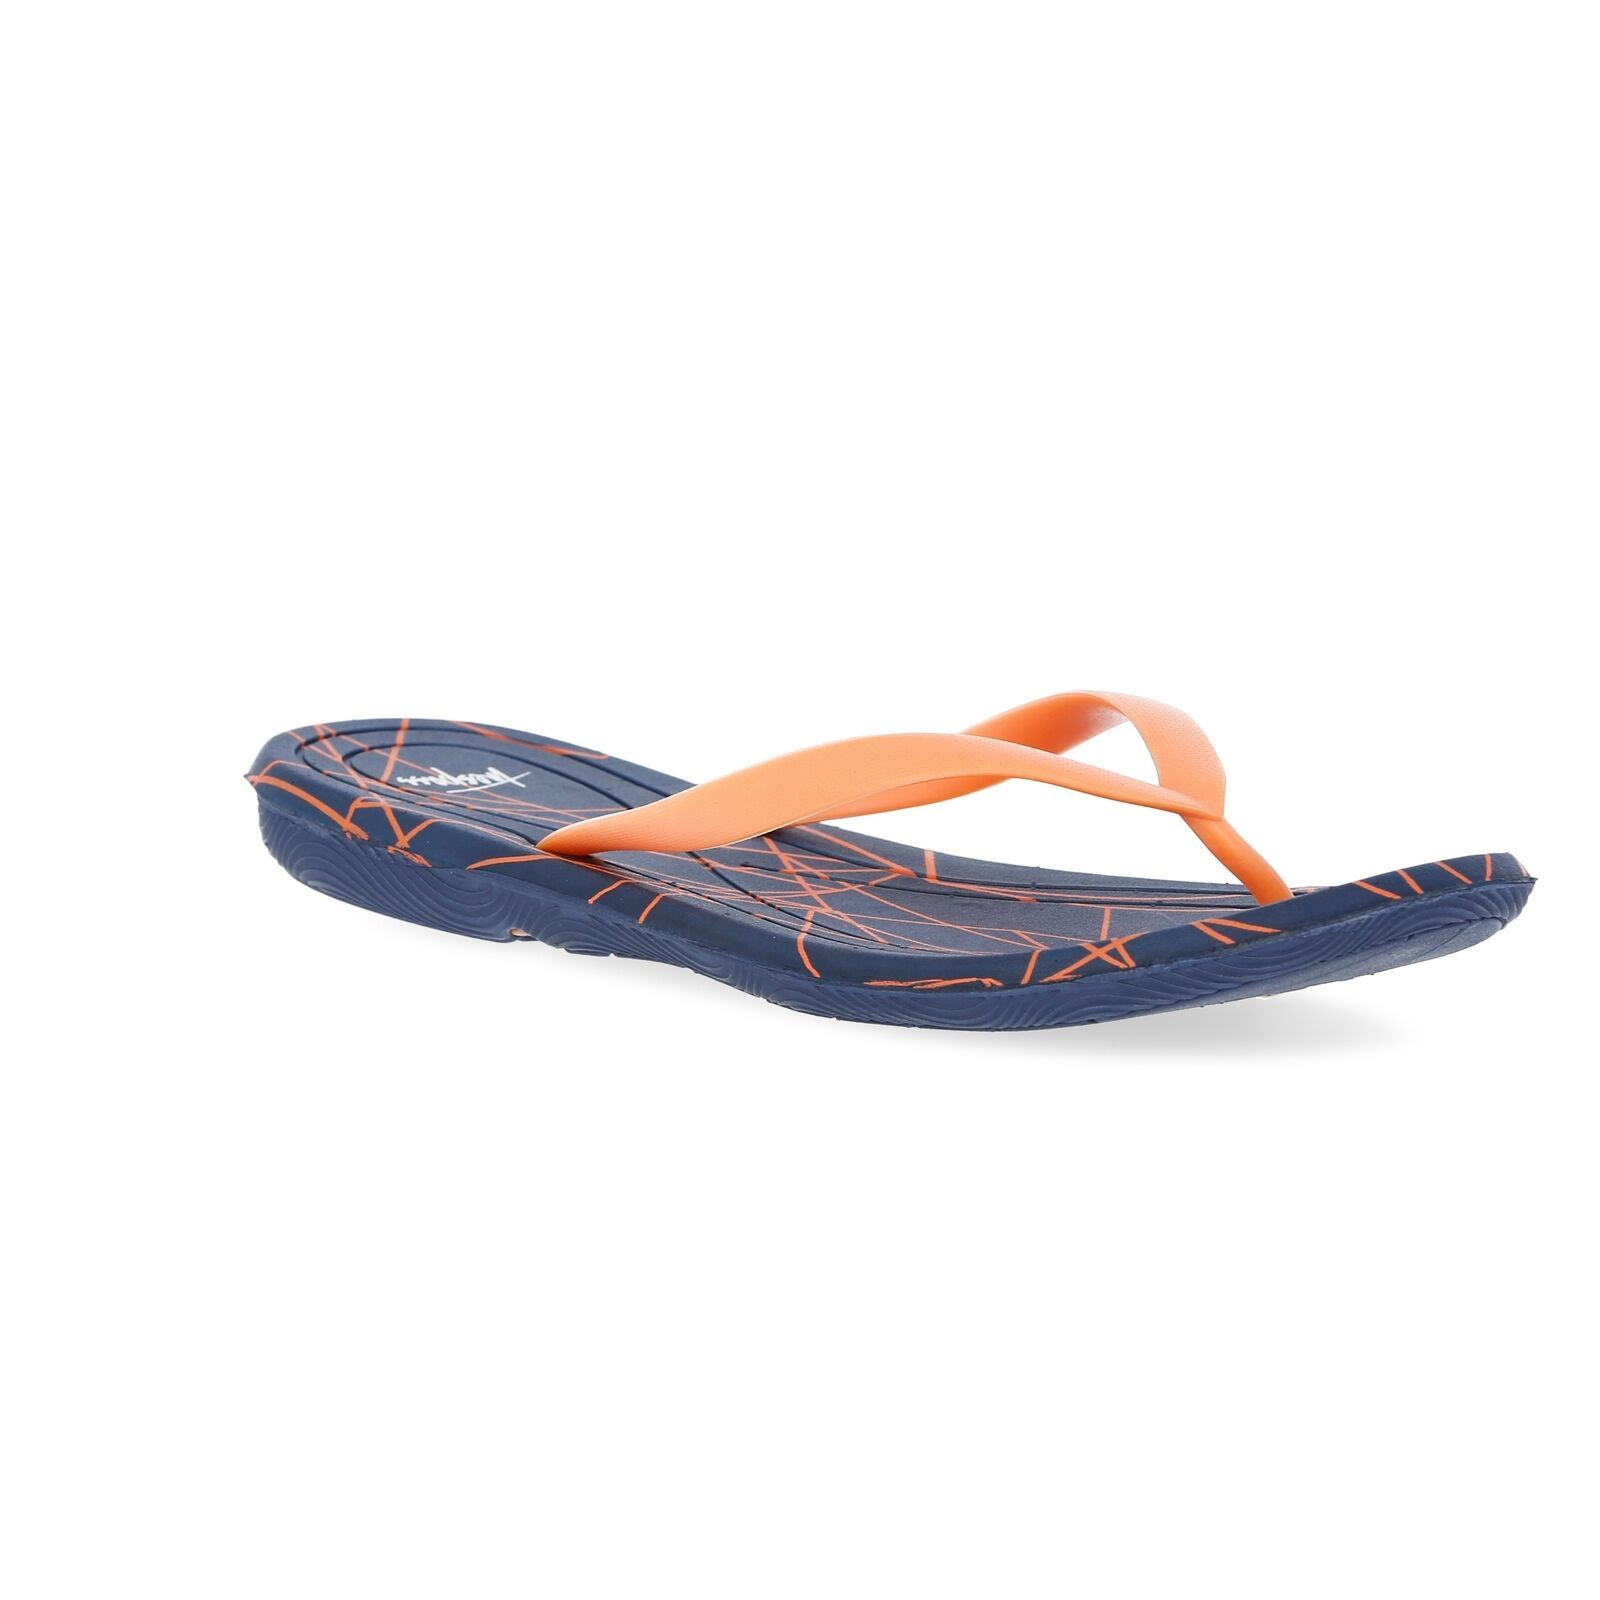 Trespass Womens/Ladies Zola Active Flip Flops